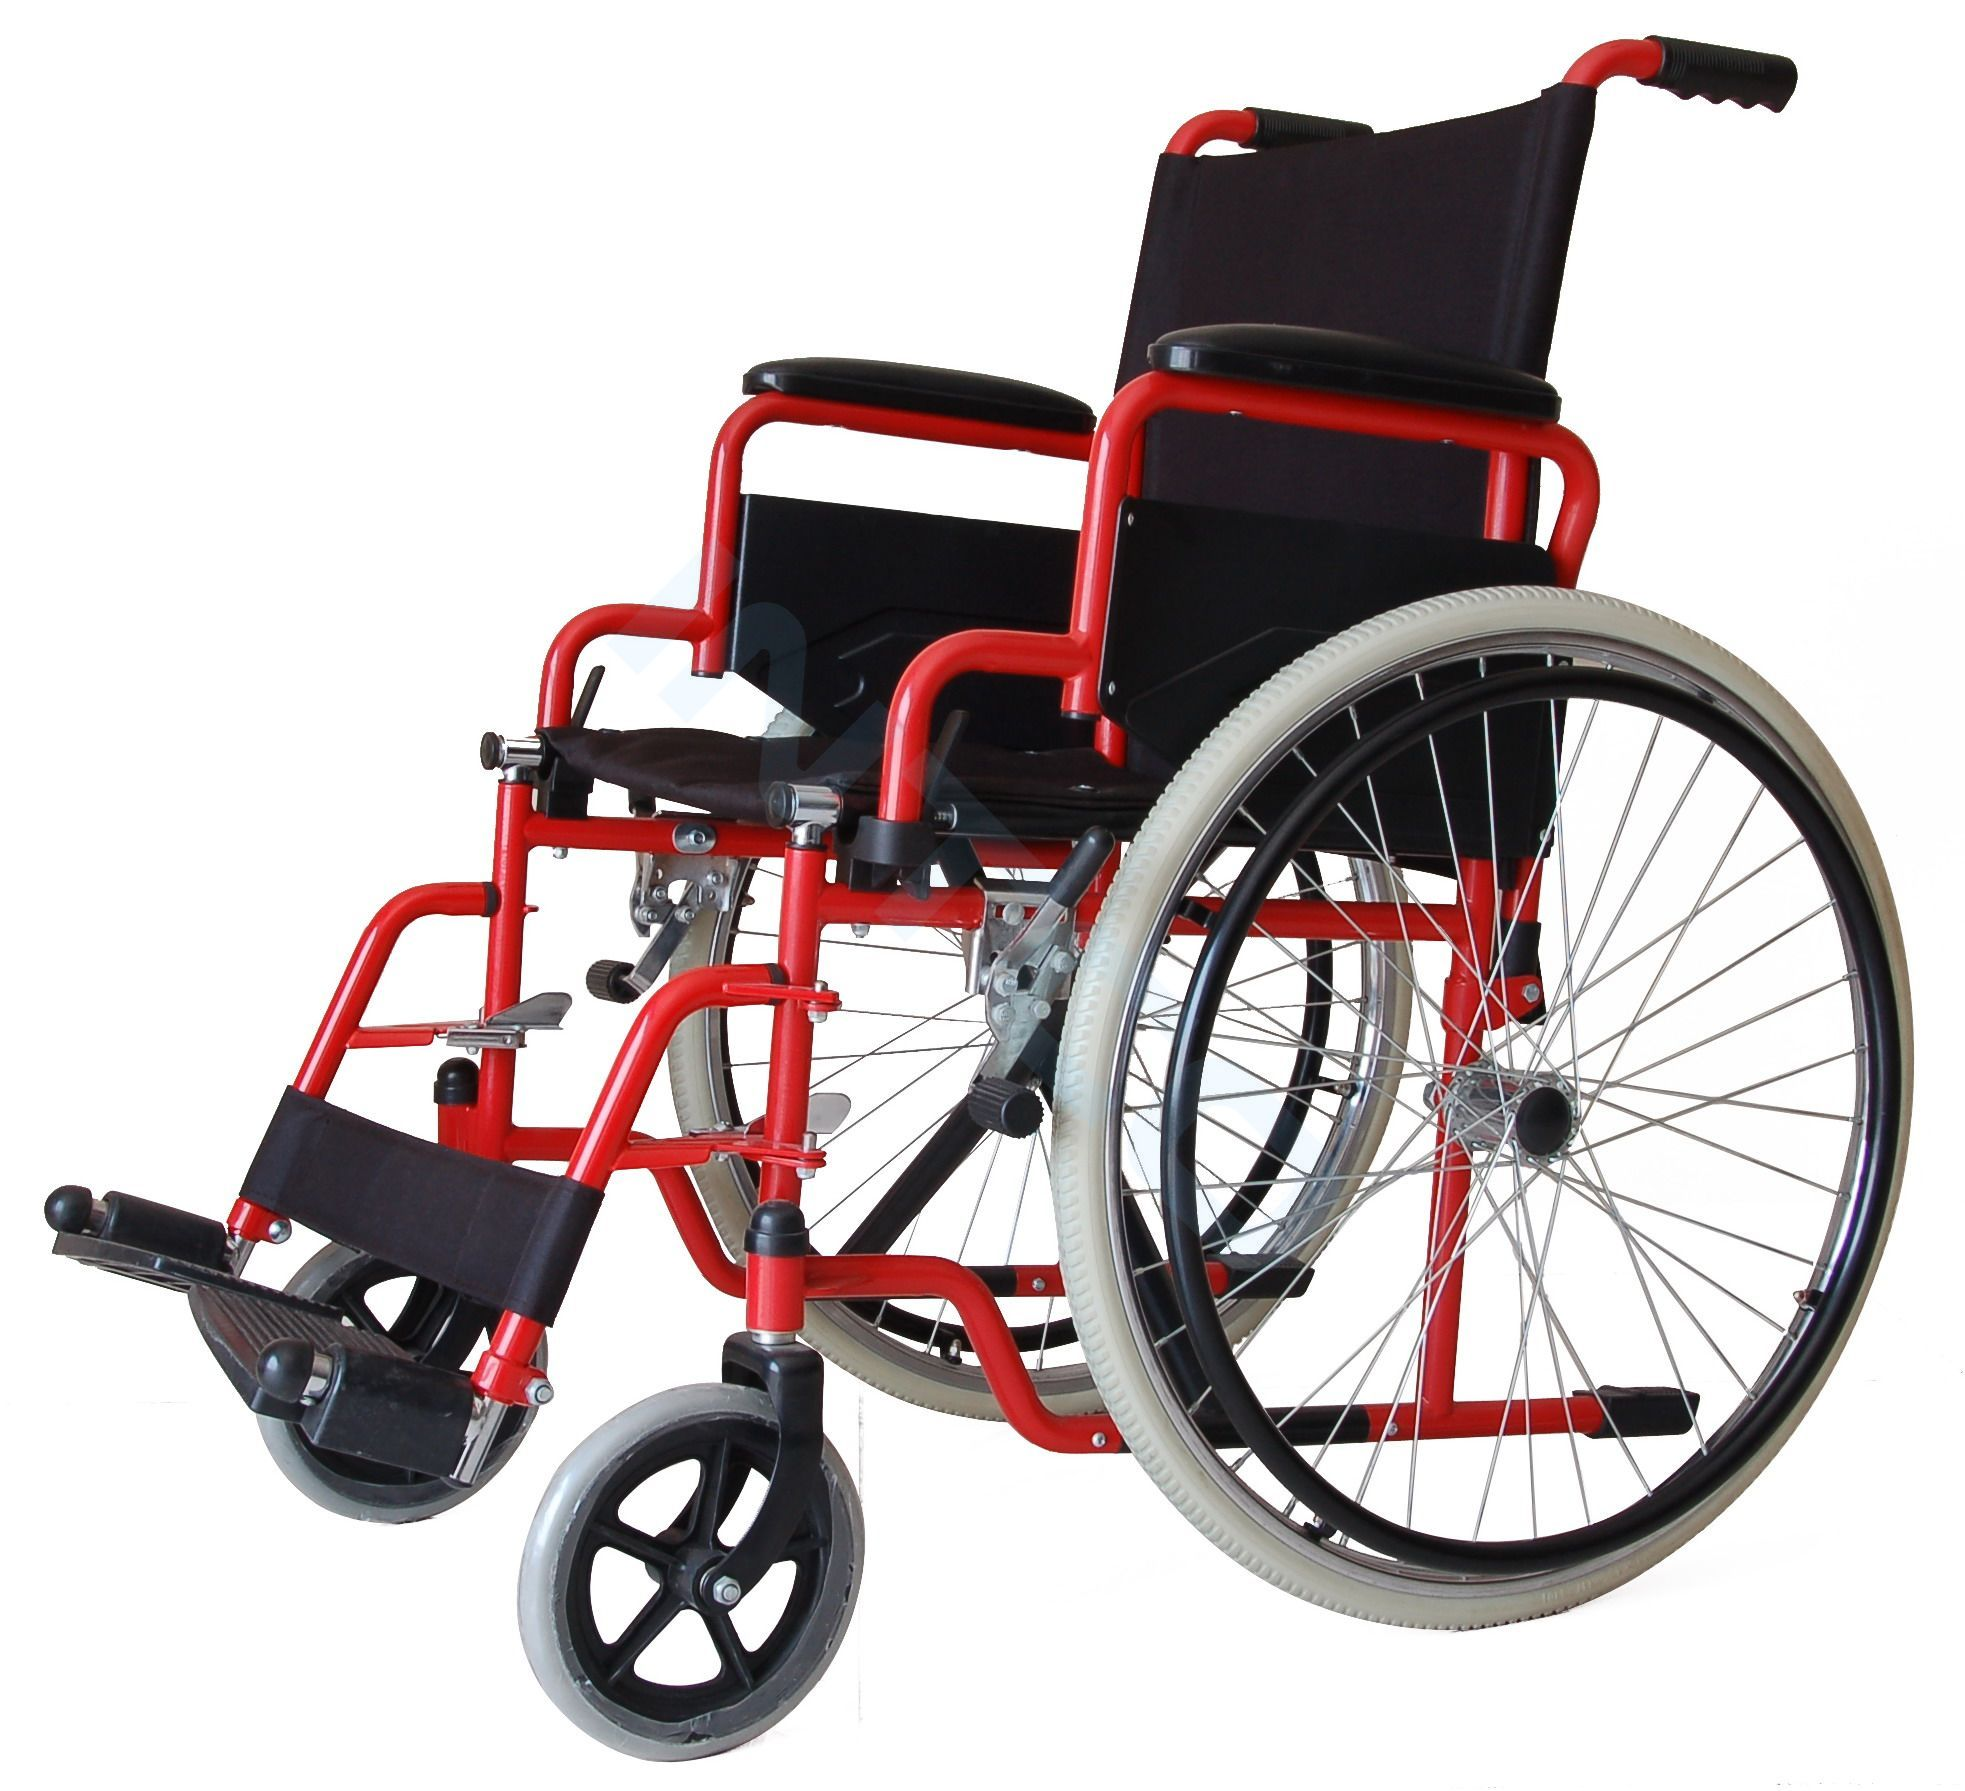 wheelchair parts canada x rocker video game chair occupational therapy 职能治疗  paincare physio and foot clinic